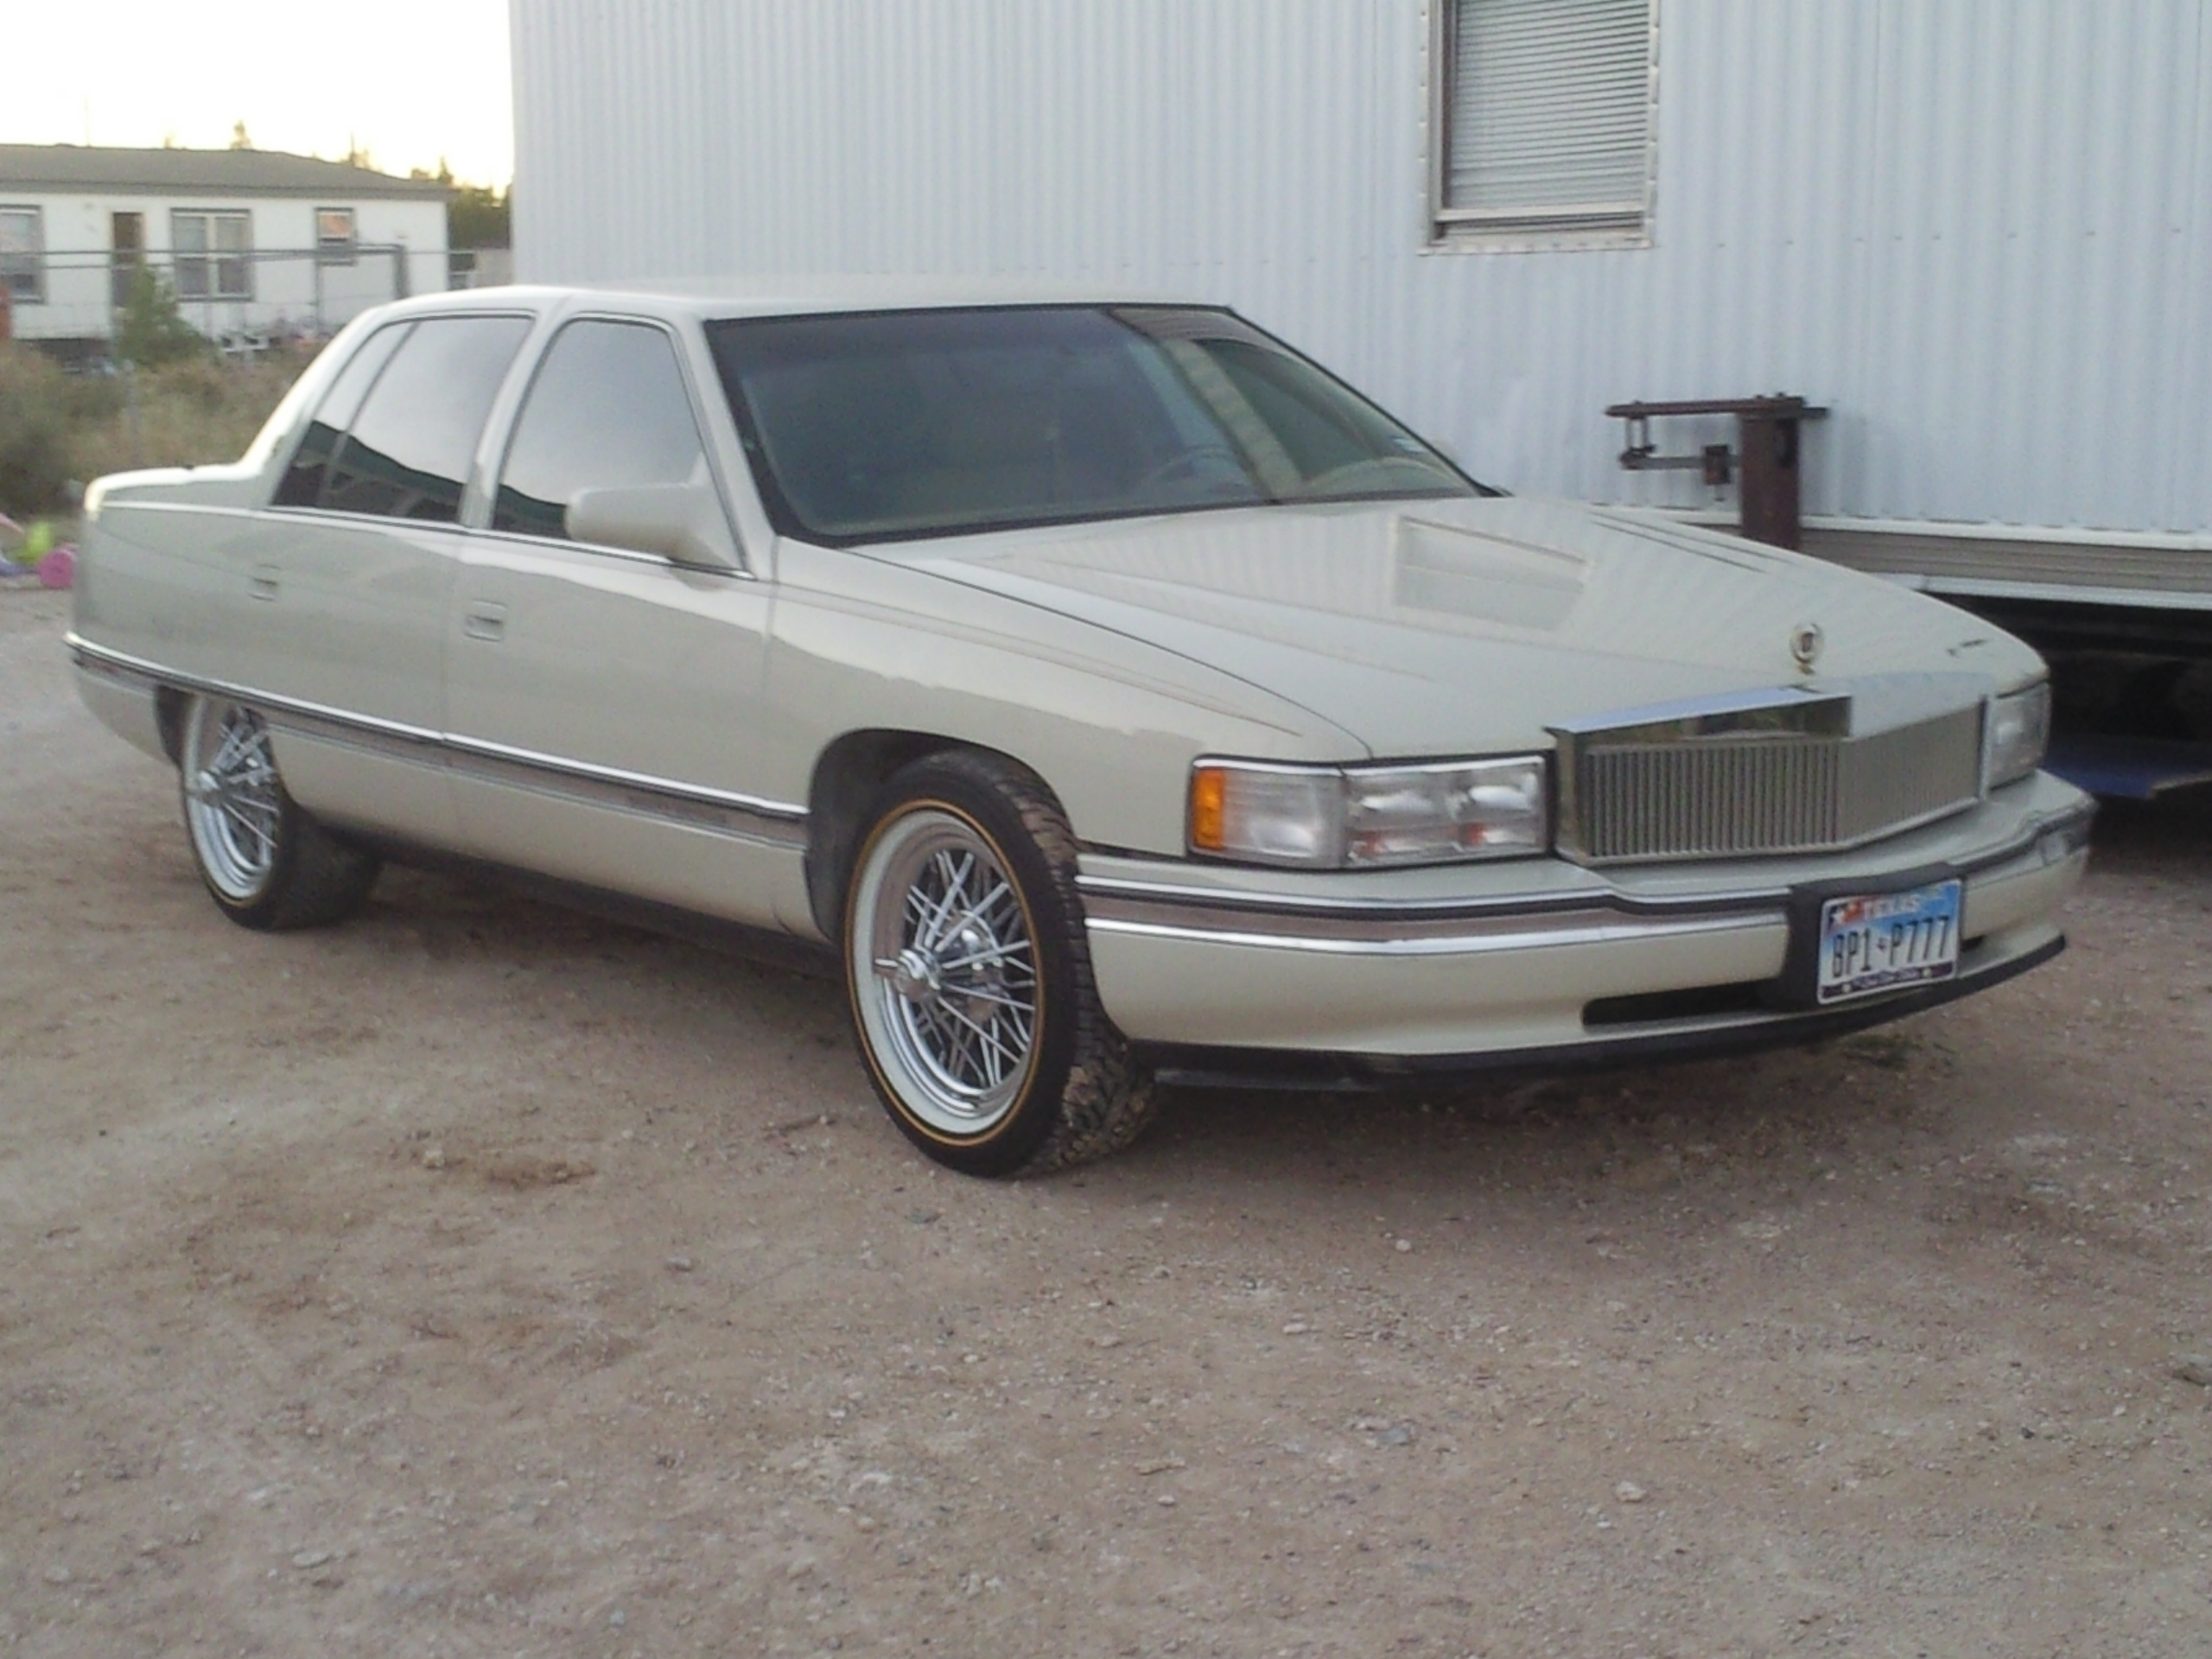 west-tex-mex-915's 1995 Cadillac DeVille